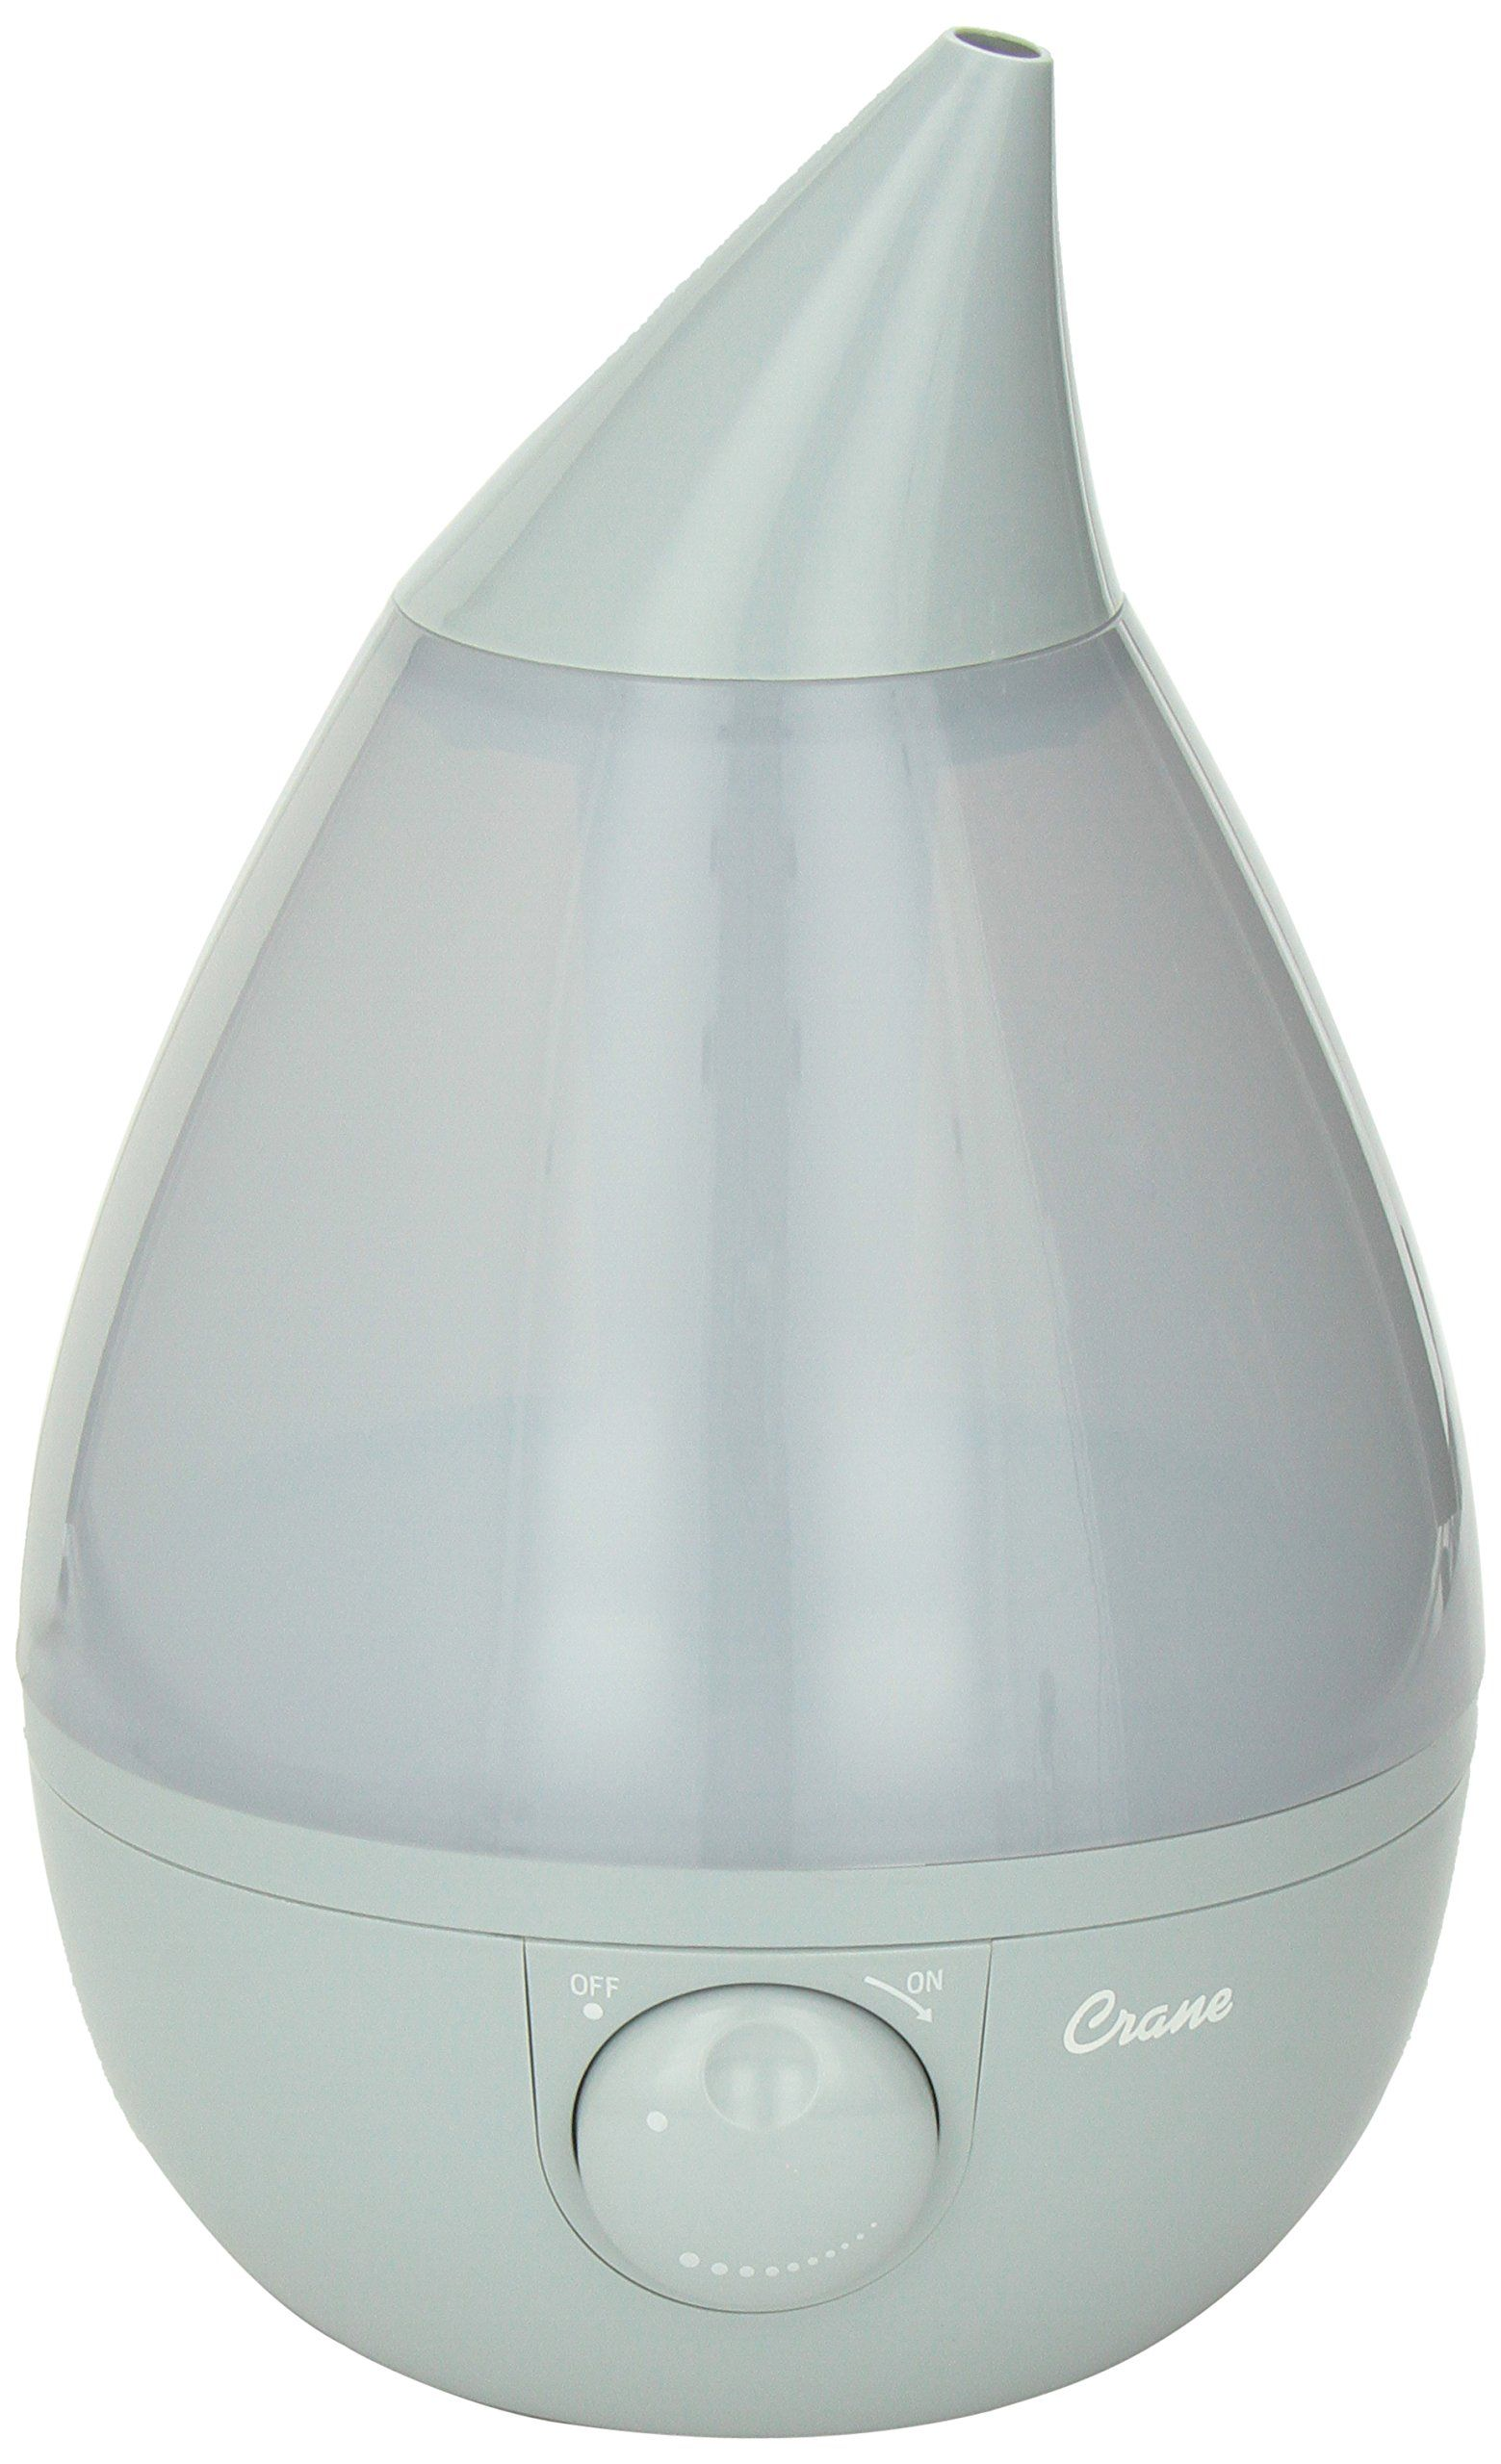 Crane Drop Ultrasonic Cool Mist Humidifier | RESPIRATORY CARE